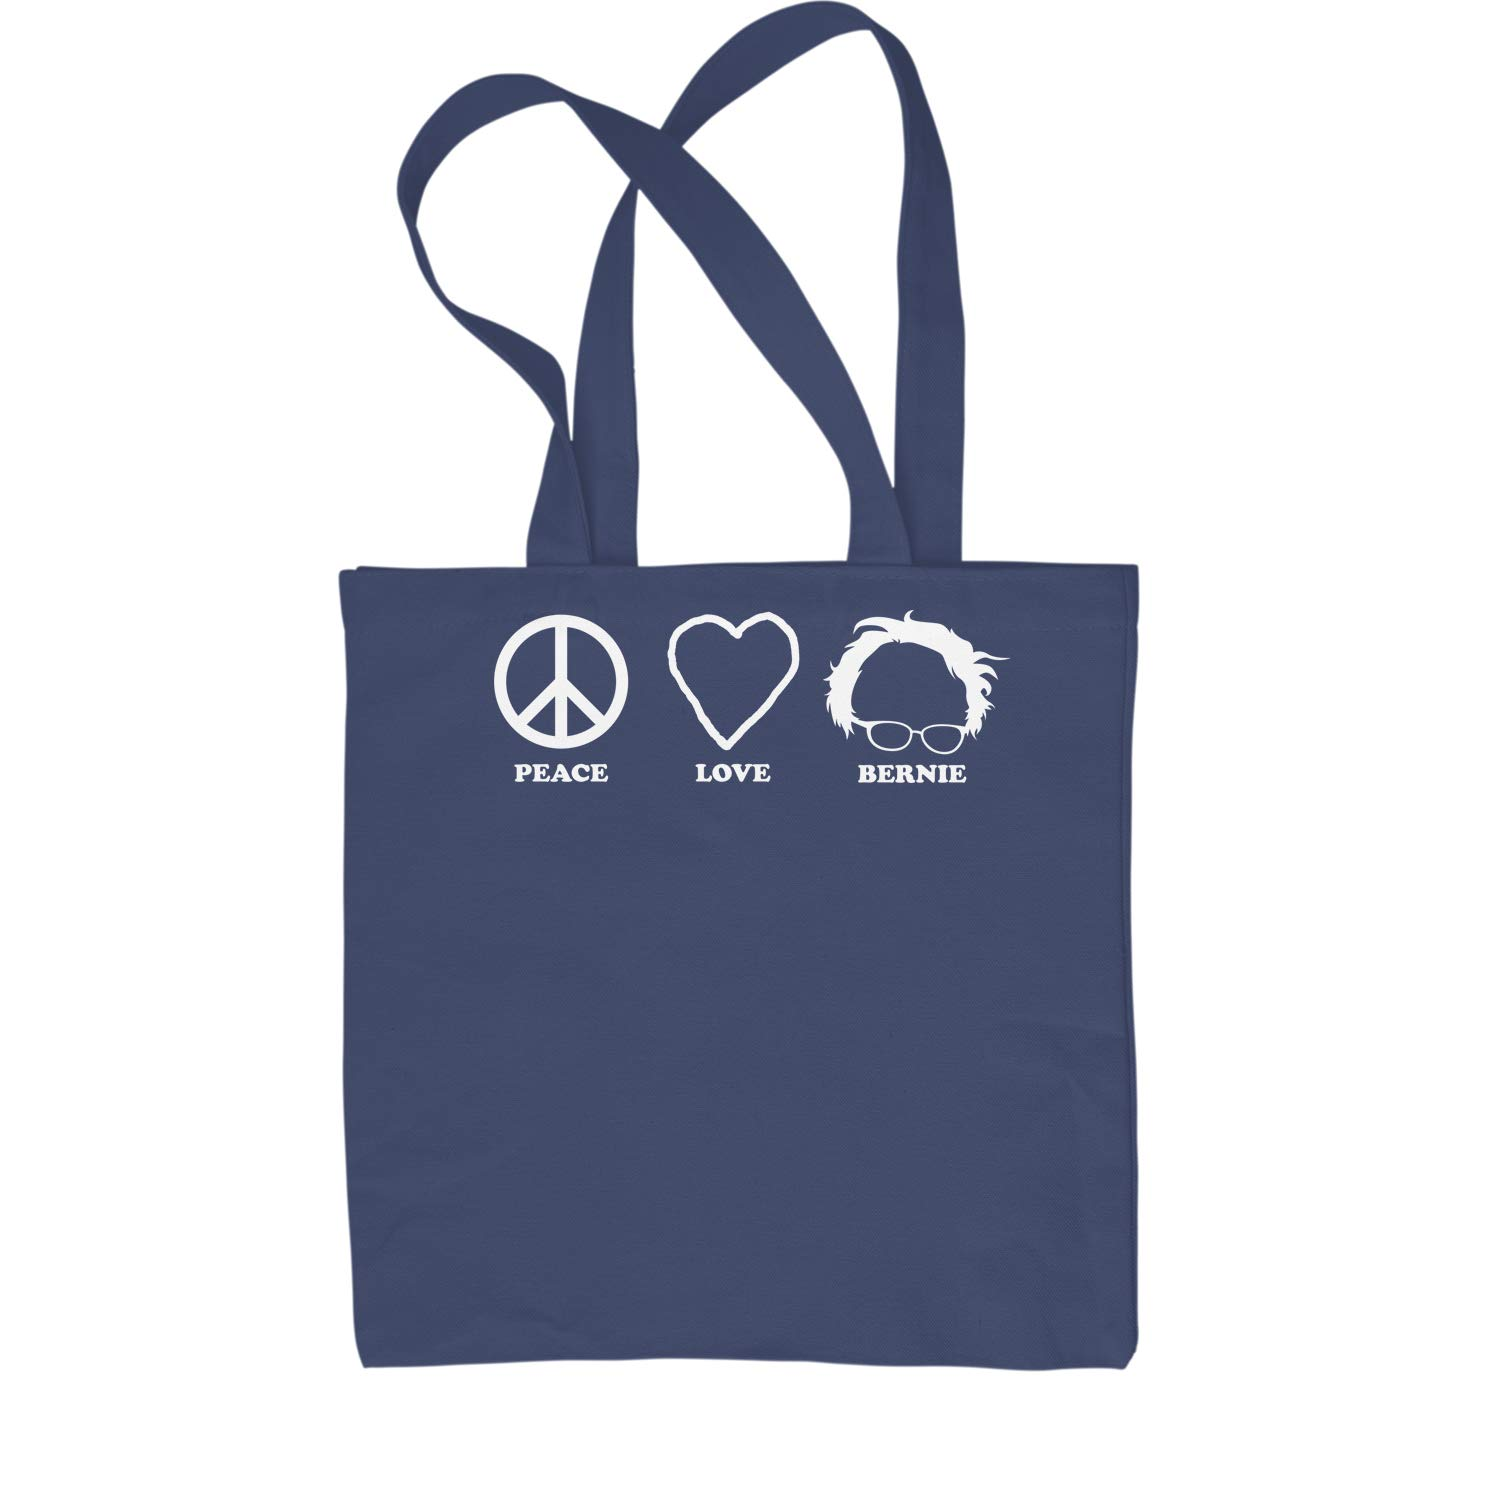 Expression Tees Peace Love Bernie Sanders For President Shopping Tote Bag